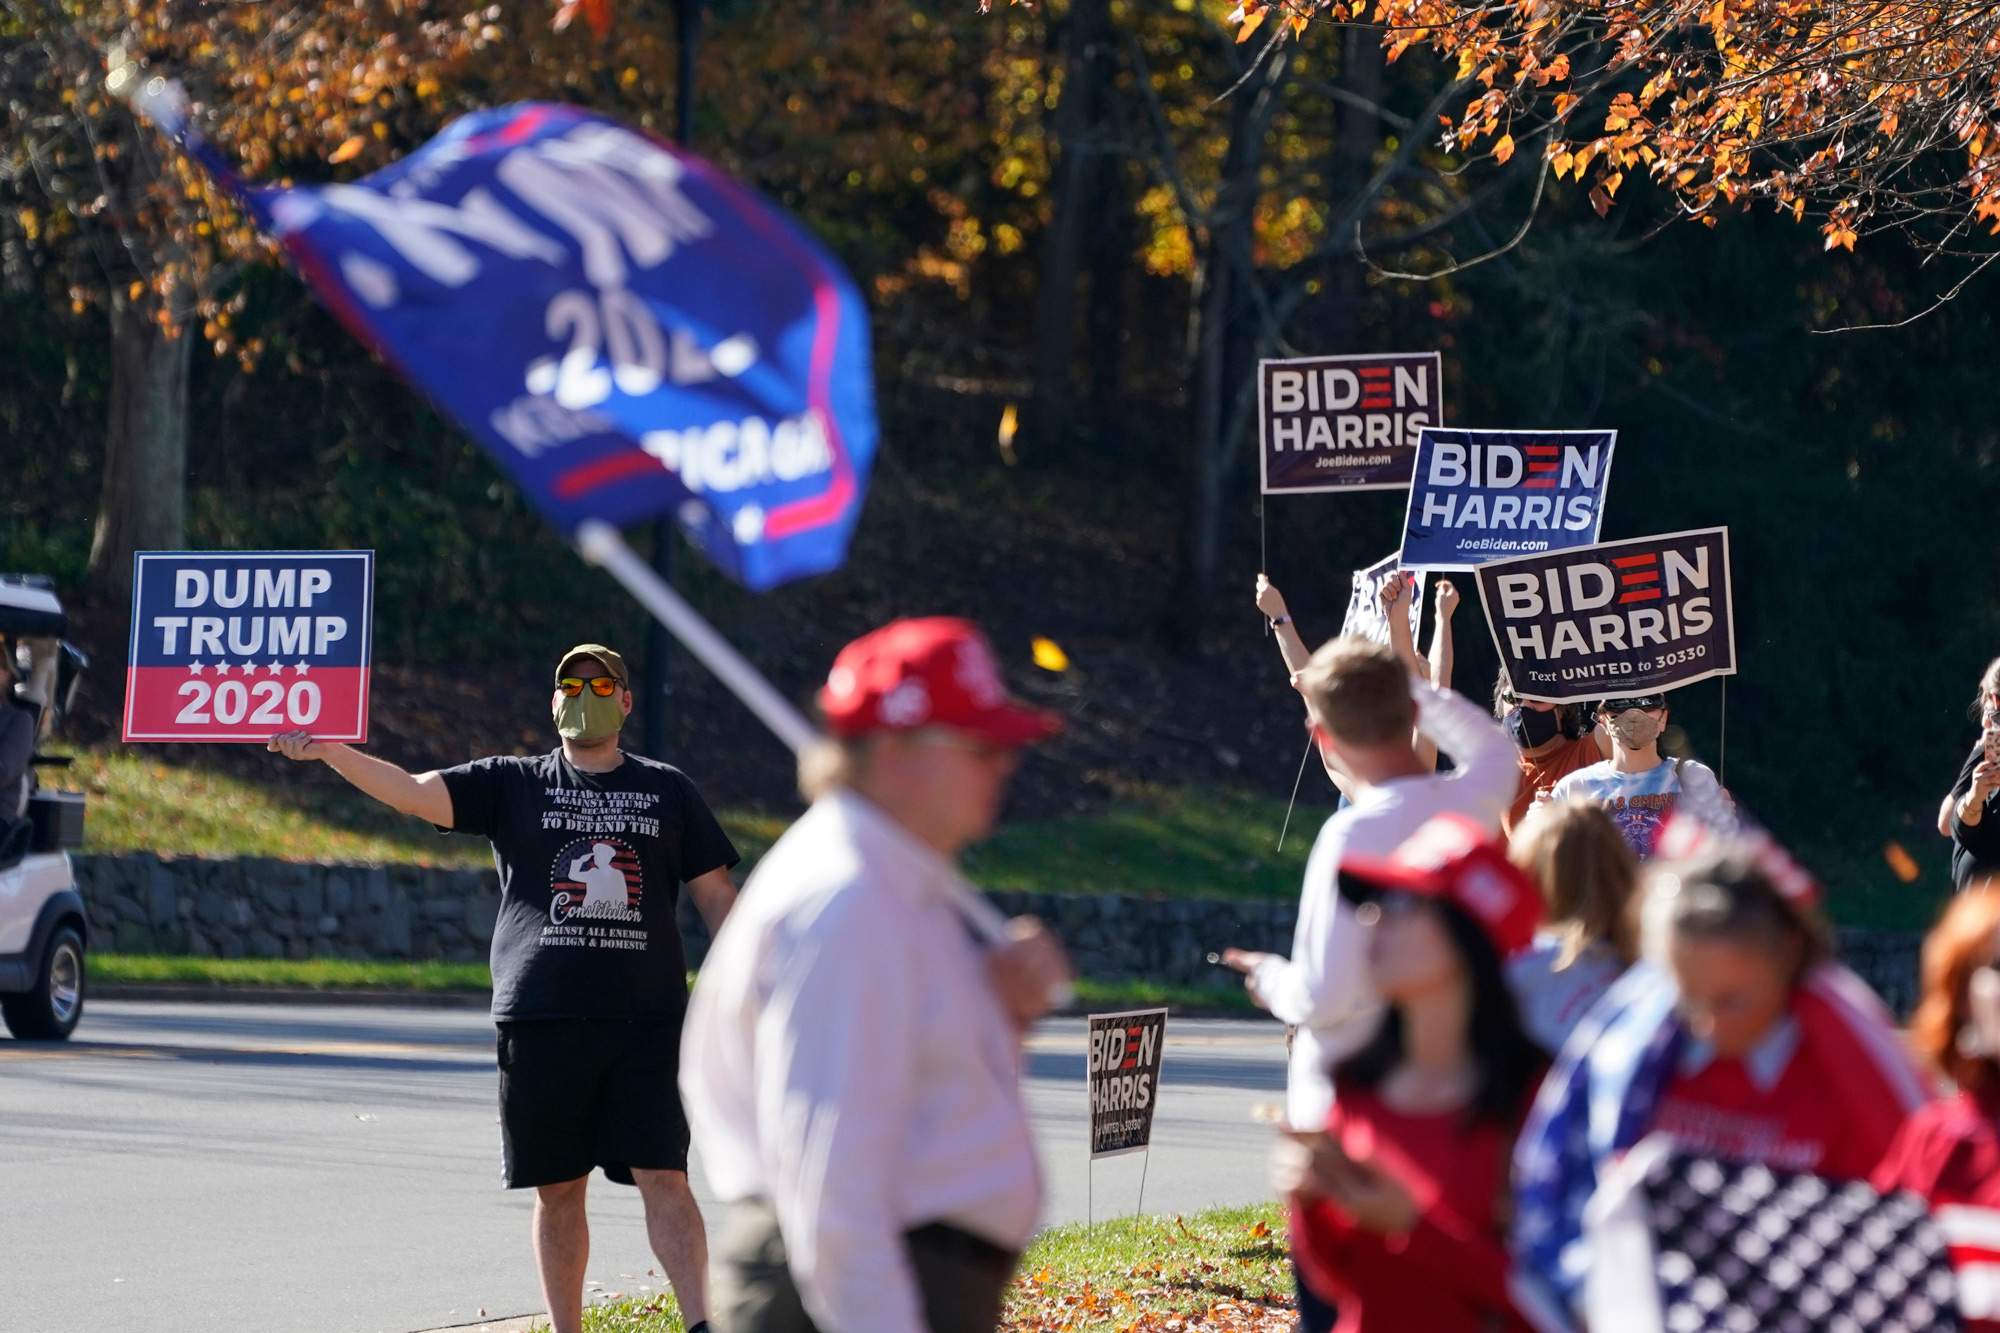 People wave signs and flags at the entrance to Trump National golf club in Sterling, Virginia, on November 7.